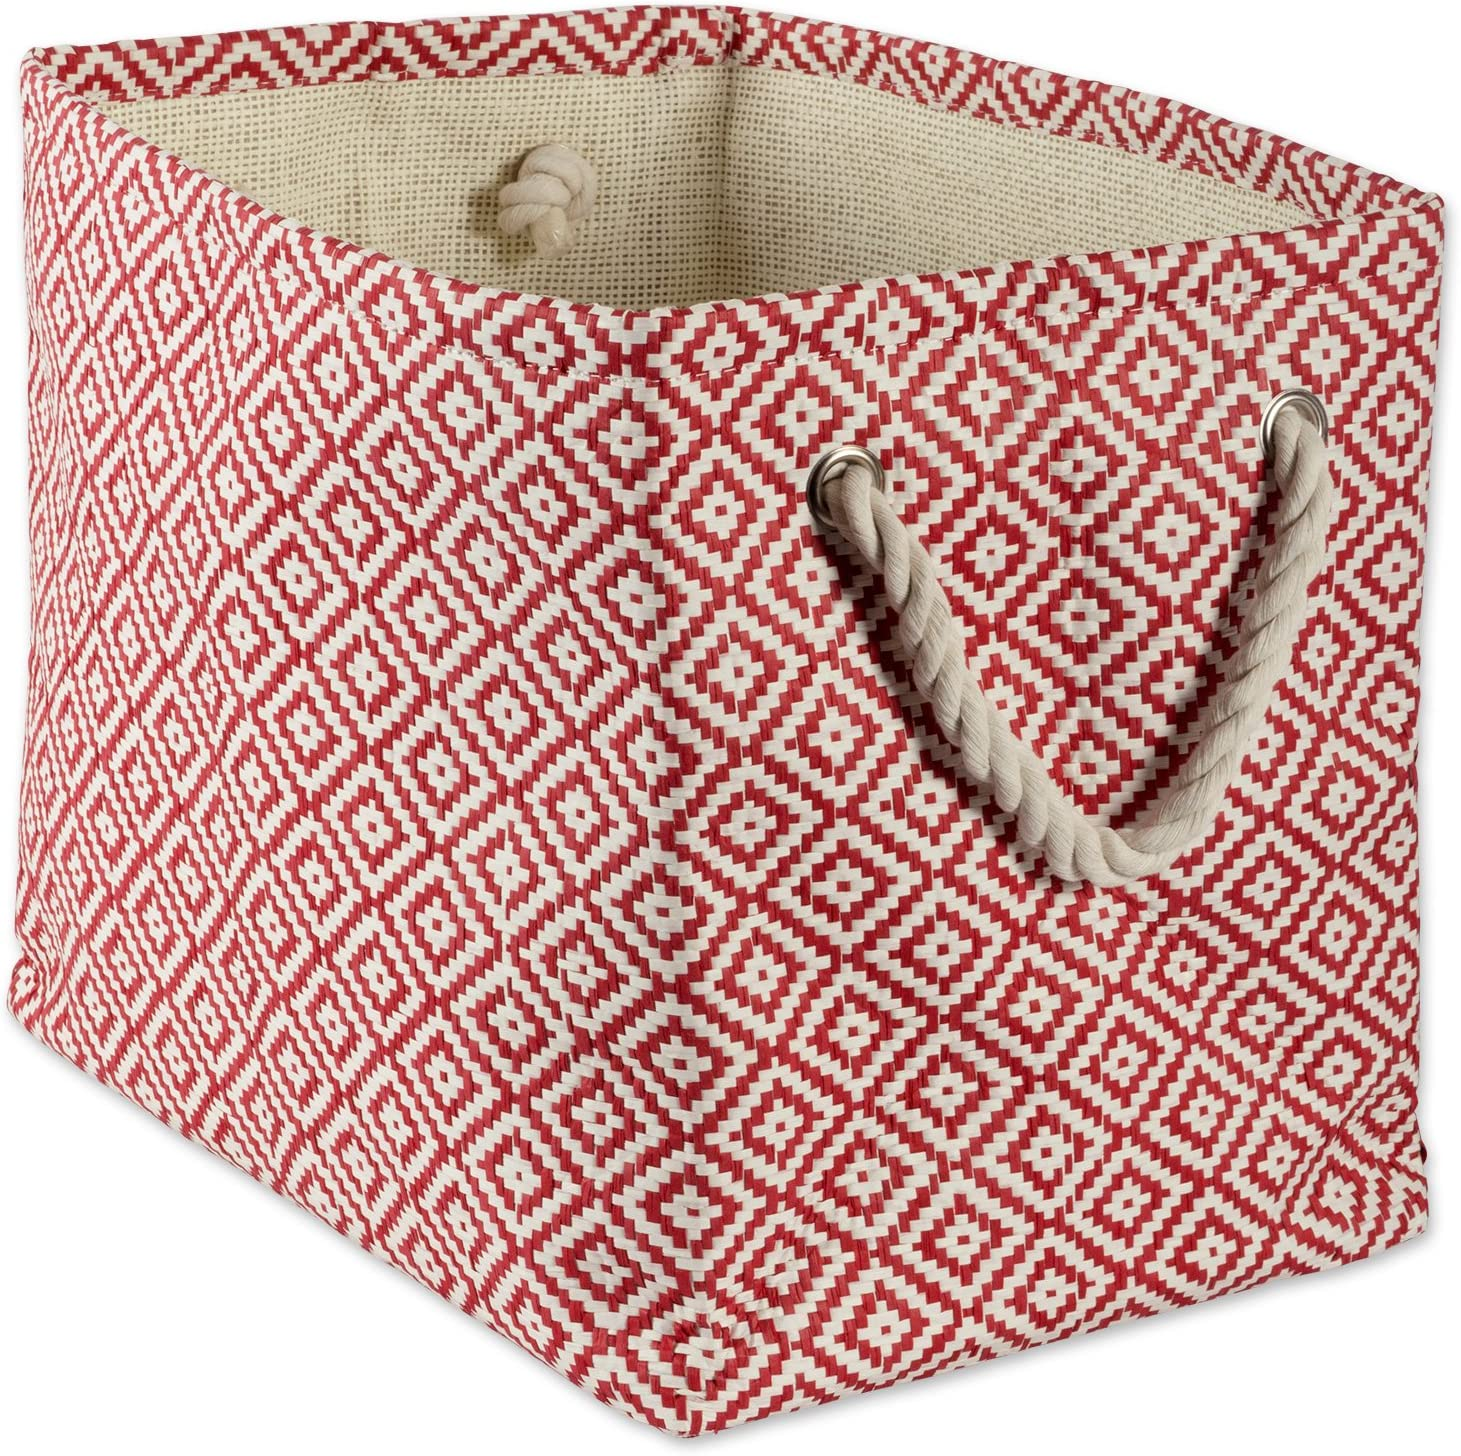 DII Geo Diamond Woven Paper Laundry Hamper or Storage Bin, Large Rectangle, Rust